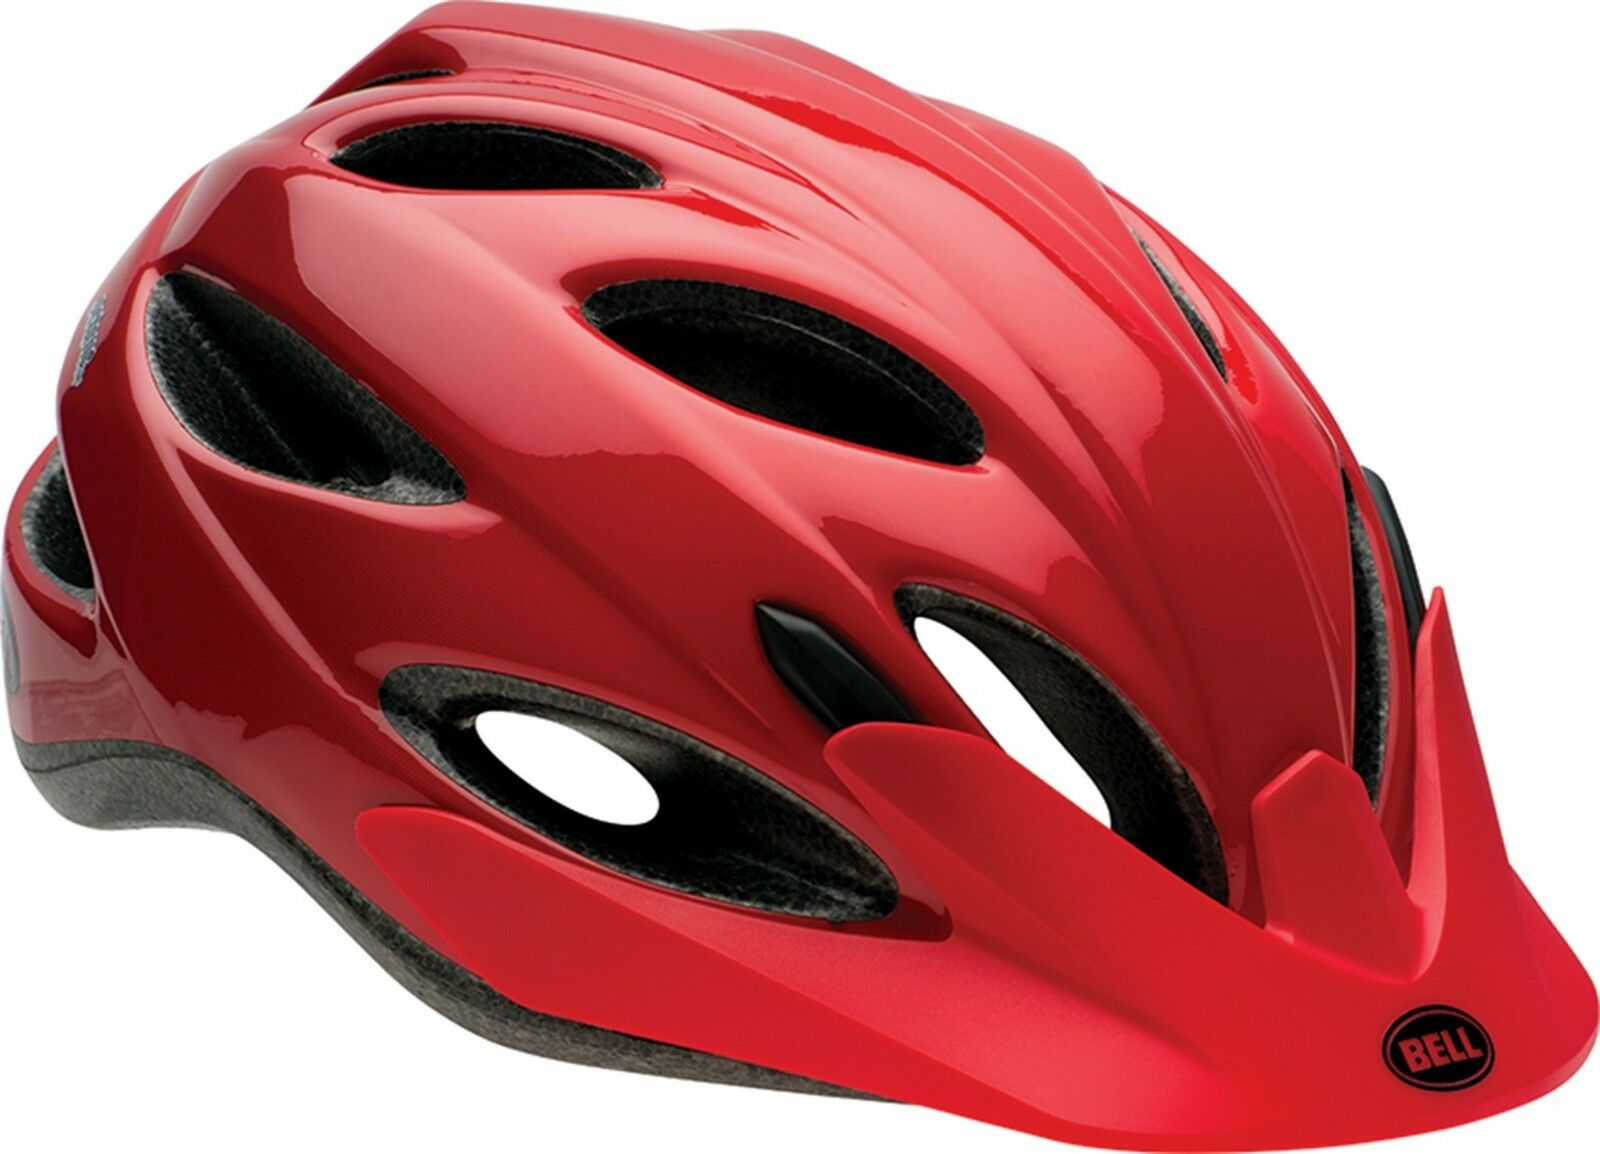 NEW Bell Octane Youth Universal Bicycle Helmet RED Comet 50-57 cm Cycling